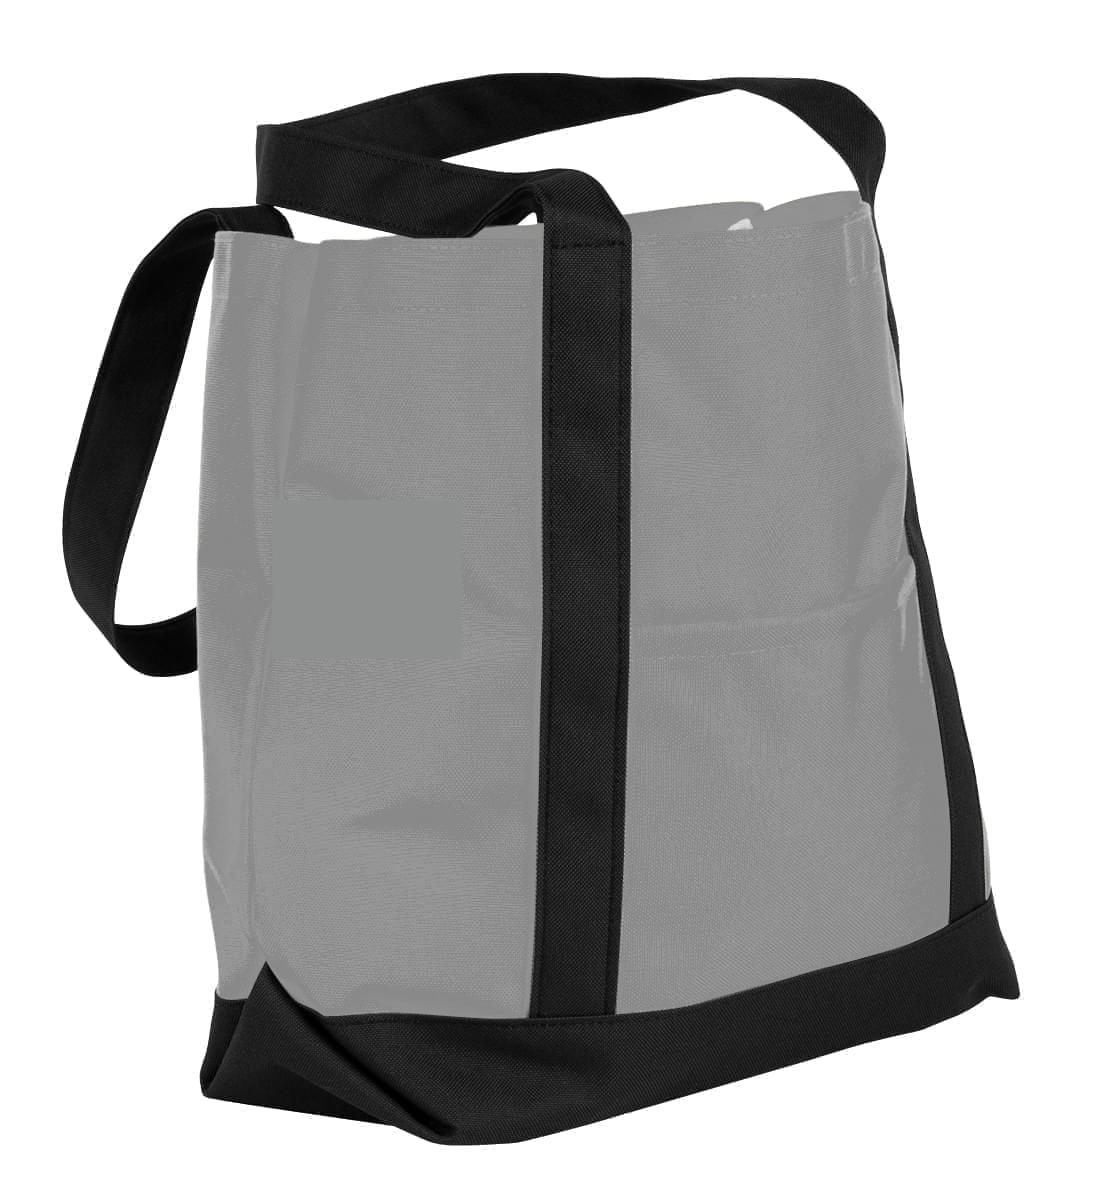 USA Made Nylon Poly Boat Tote Bags, Grey-Black, XAACL1UA1C